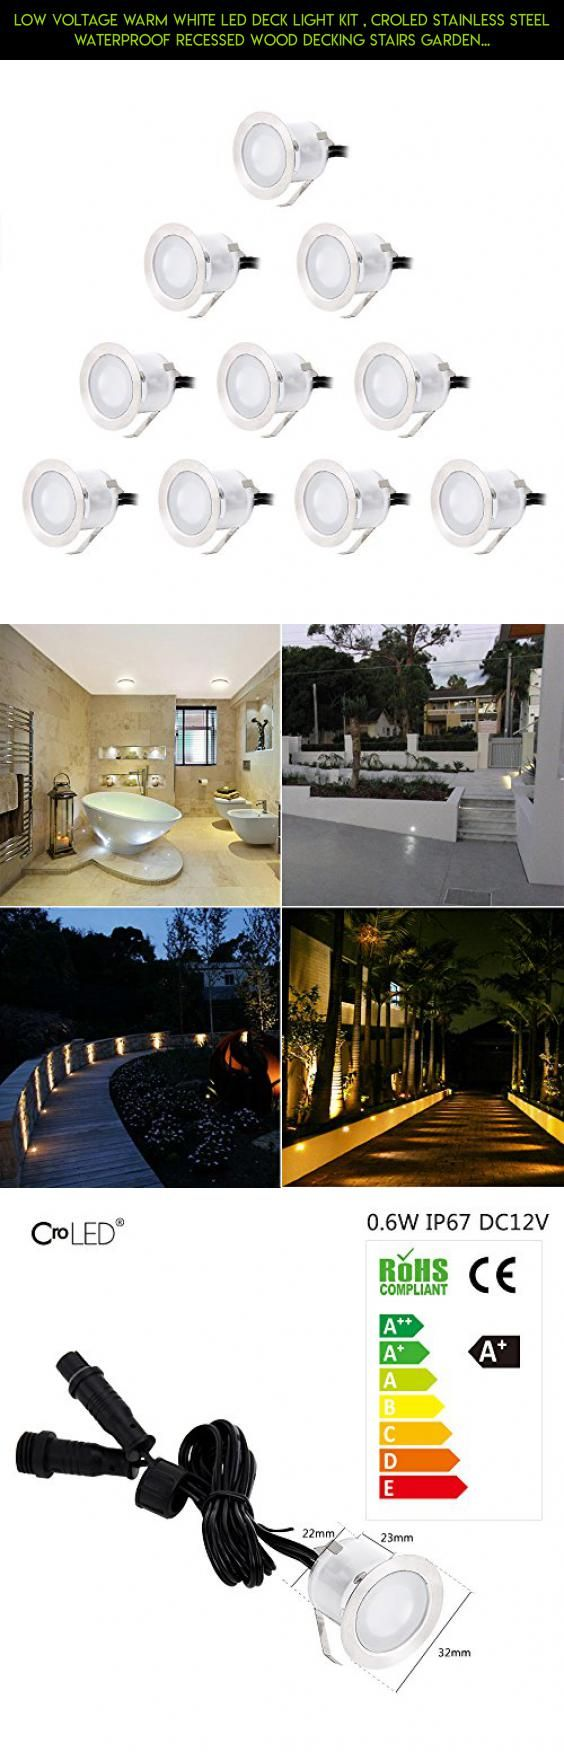 low voltage interior lighting kits%0A Low Voltage Warm White LED Deck Light Kit   CroLED Stainless Steel  Waterproof Recessed Wood Decking